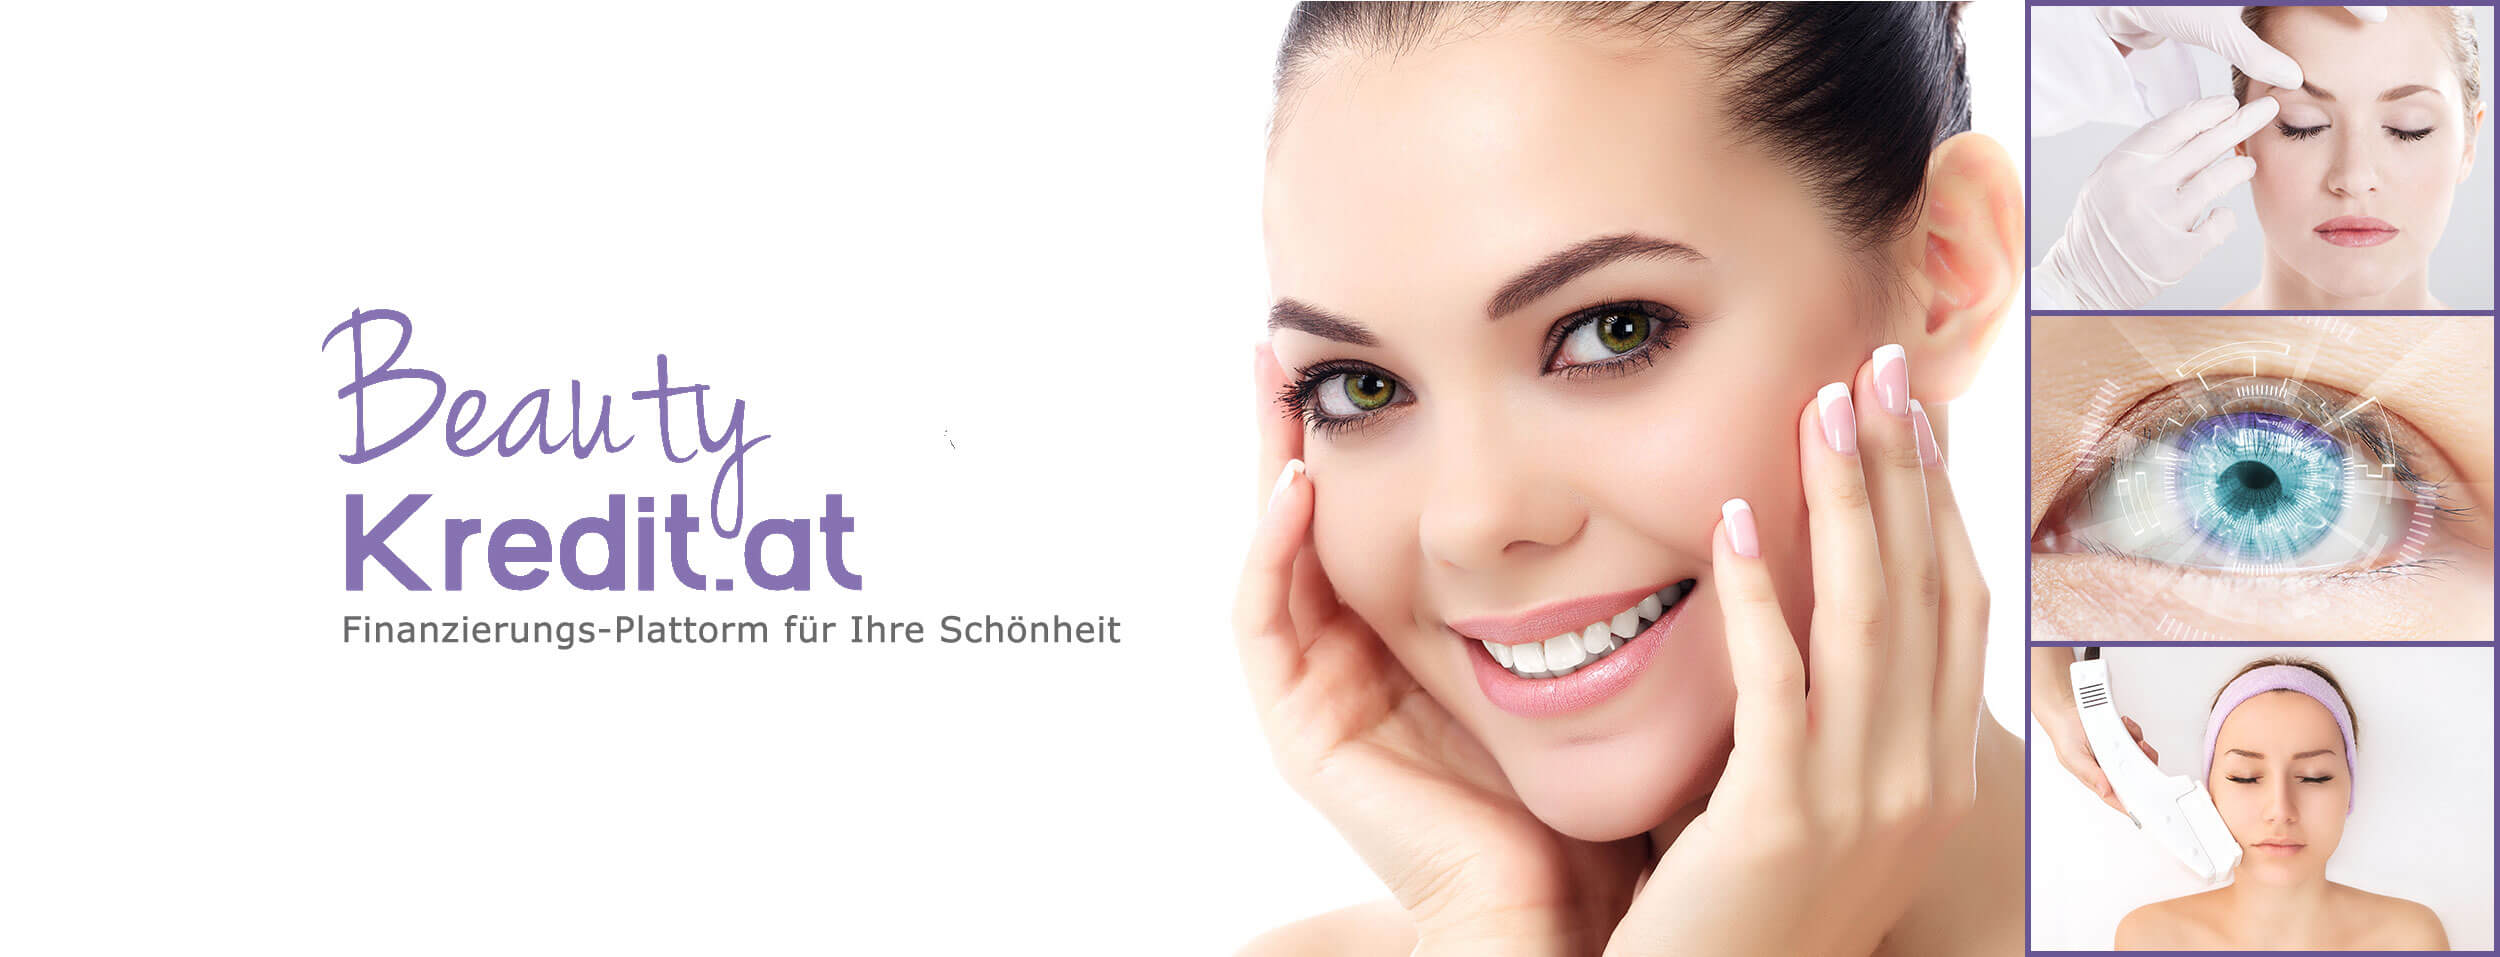 Beauty-Sofort-Kredit anfragen, Beauty Kredit, Beauty Finanzierung, Beauty OP Finanzierung, Beauty OP Finanzierungen, Beauty OPs Finanzierung